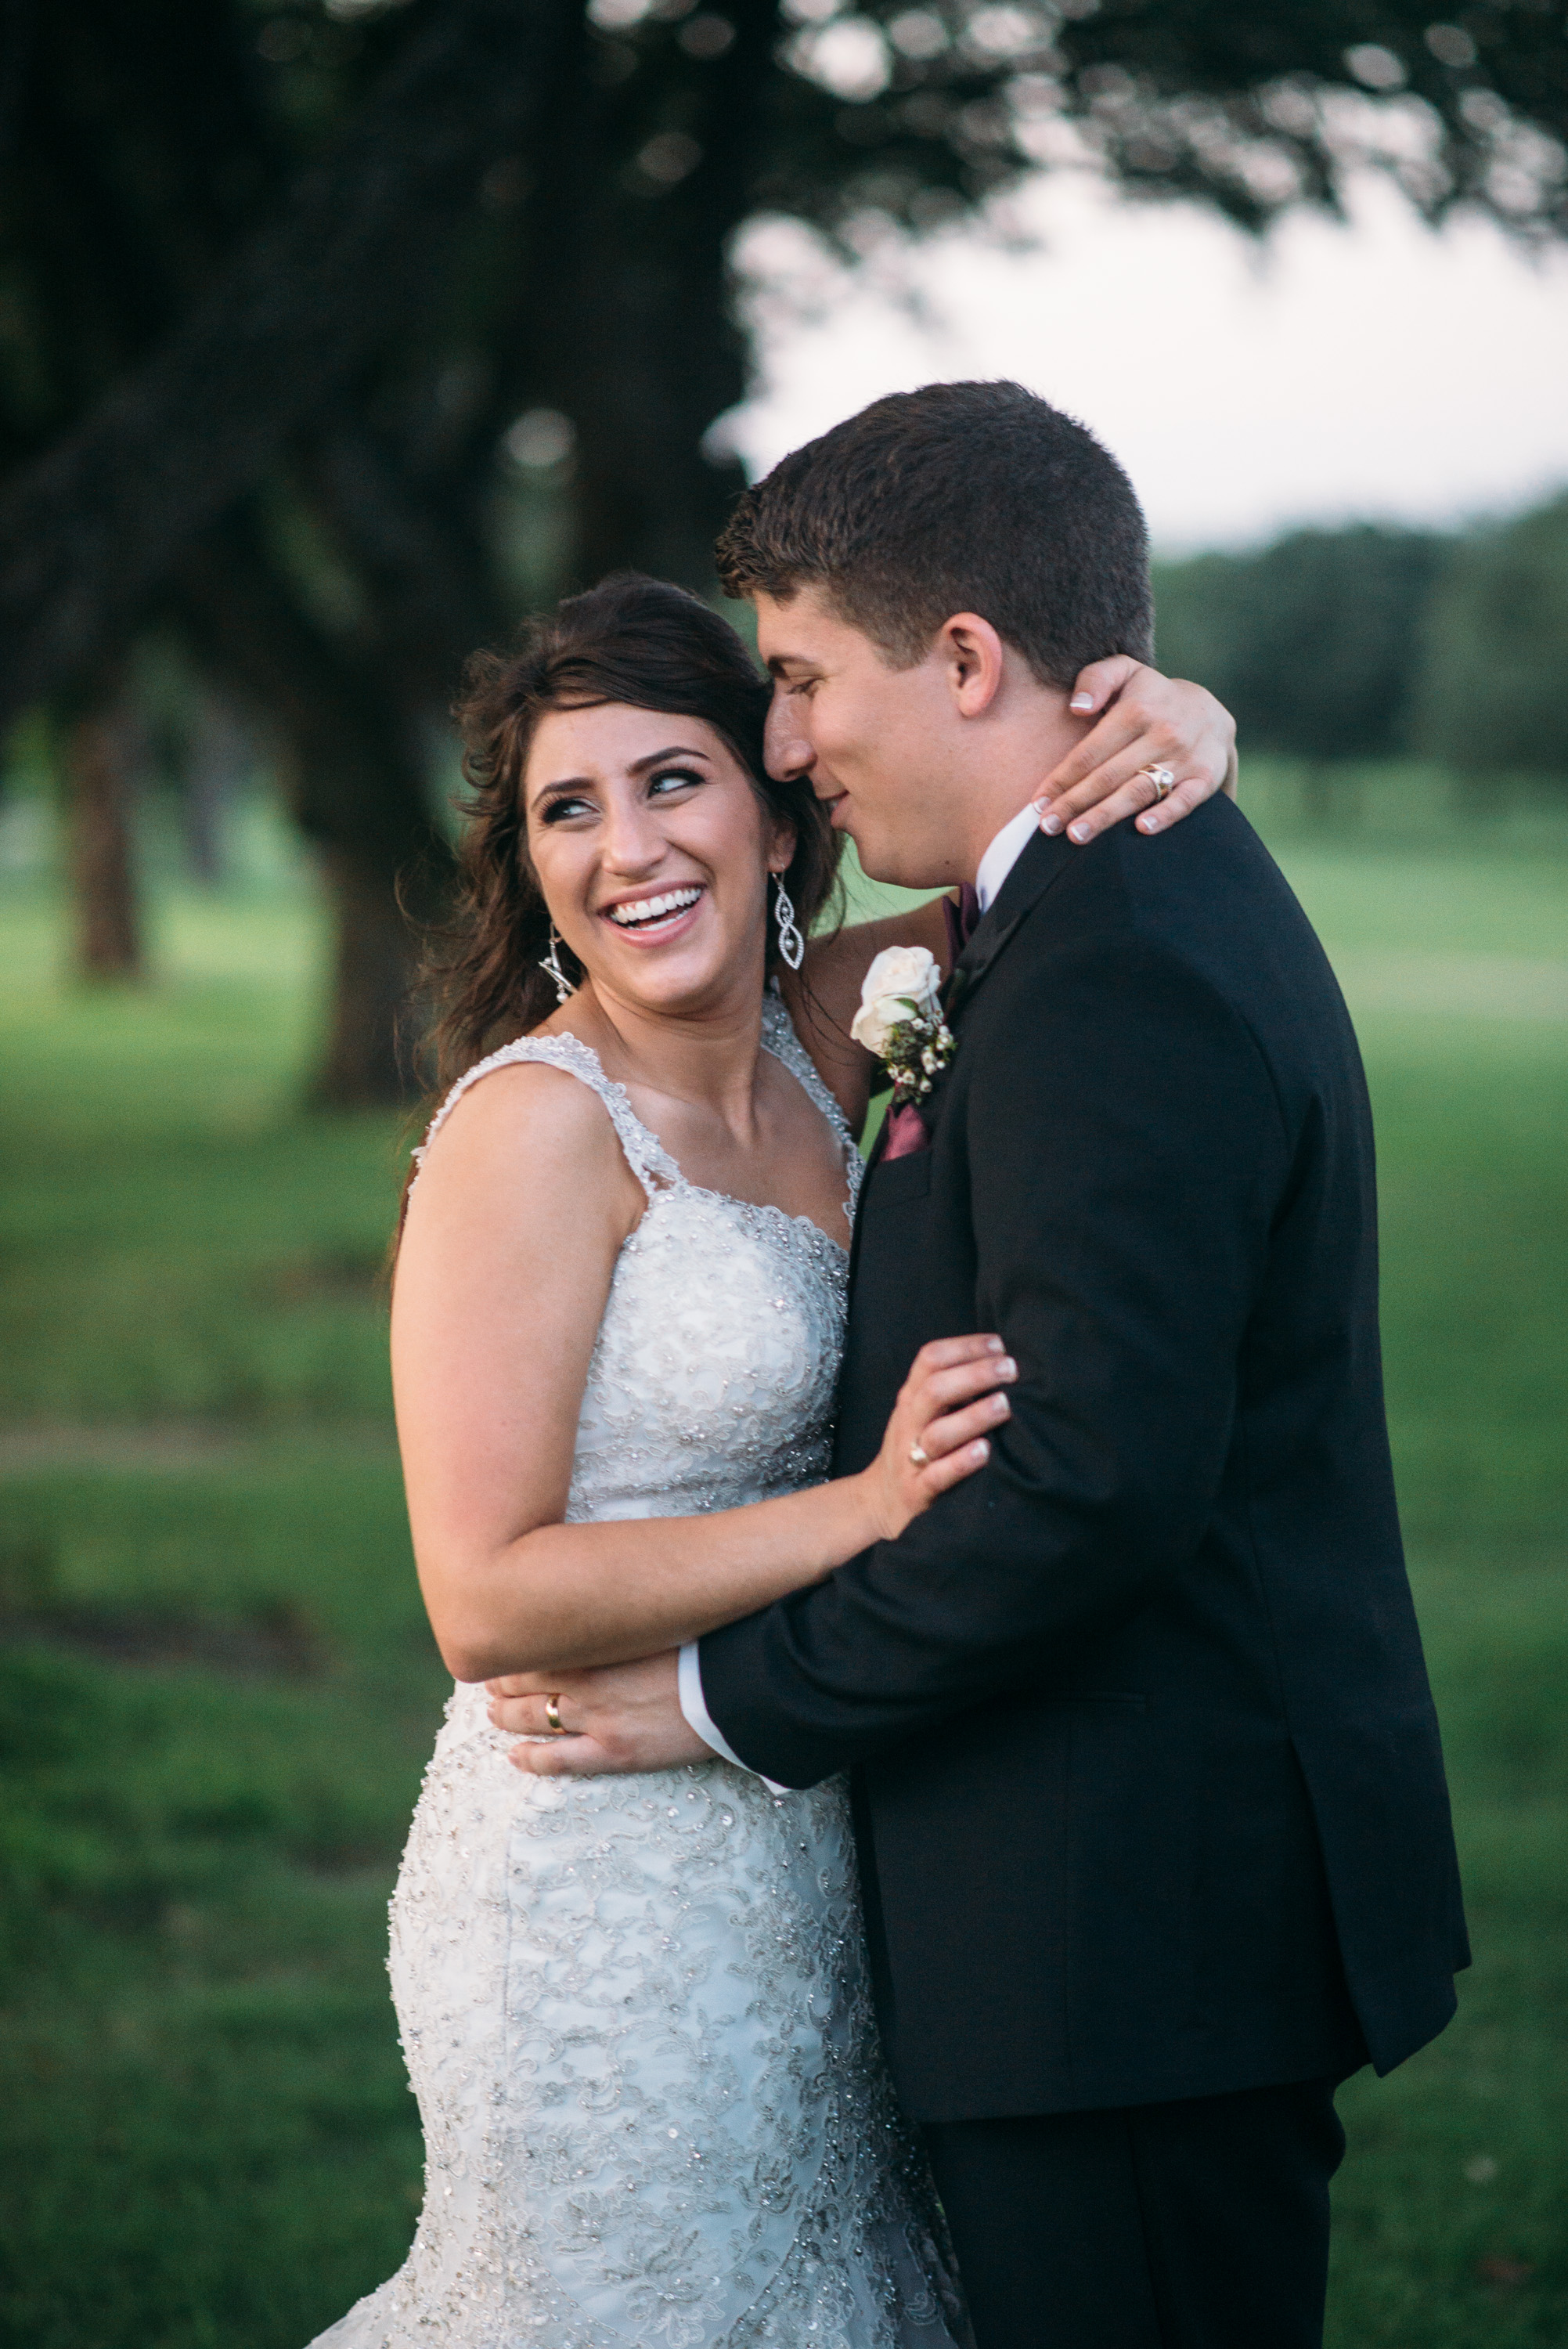 PhillipsEventCenter-AggieWedding-CollegeStationPhotographer_50.jpg